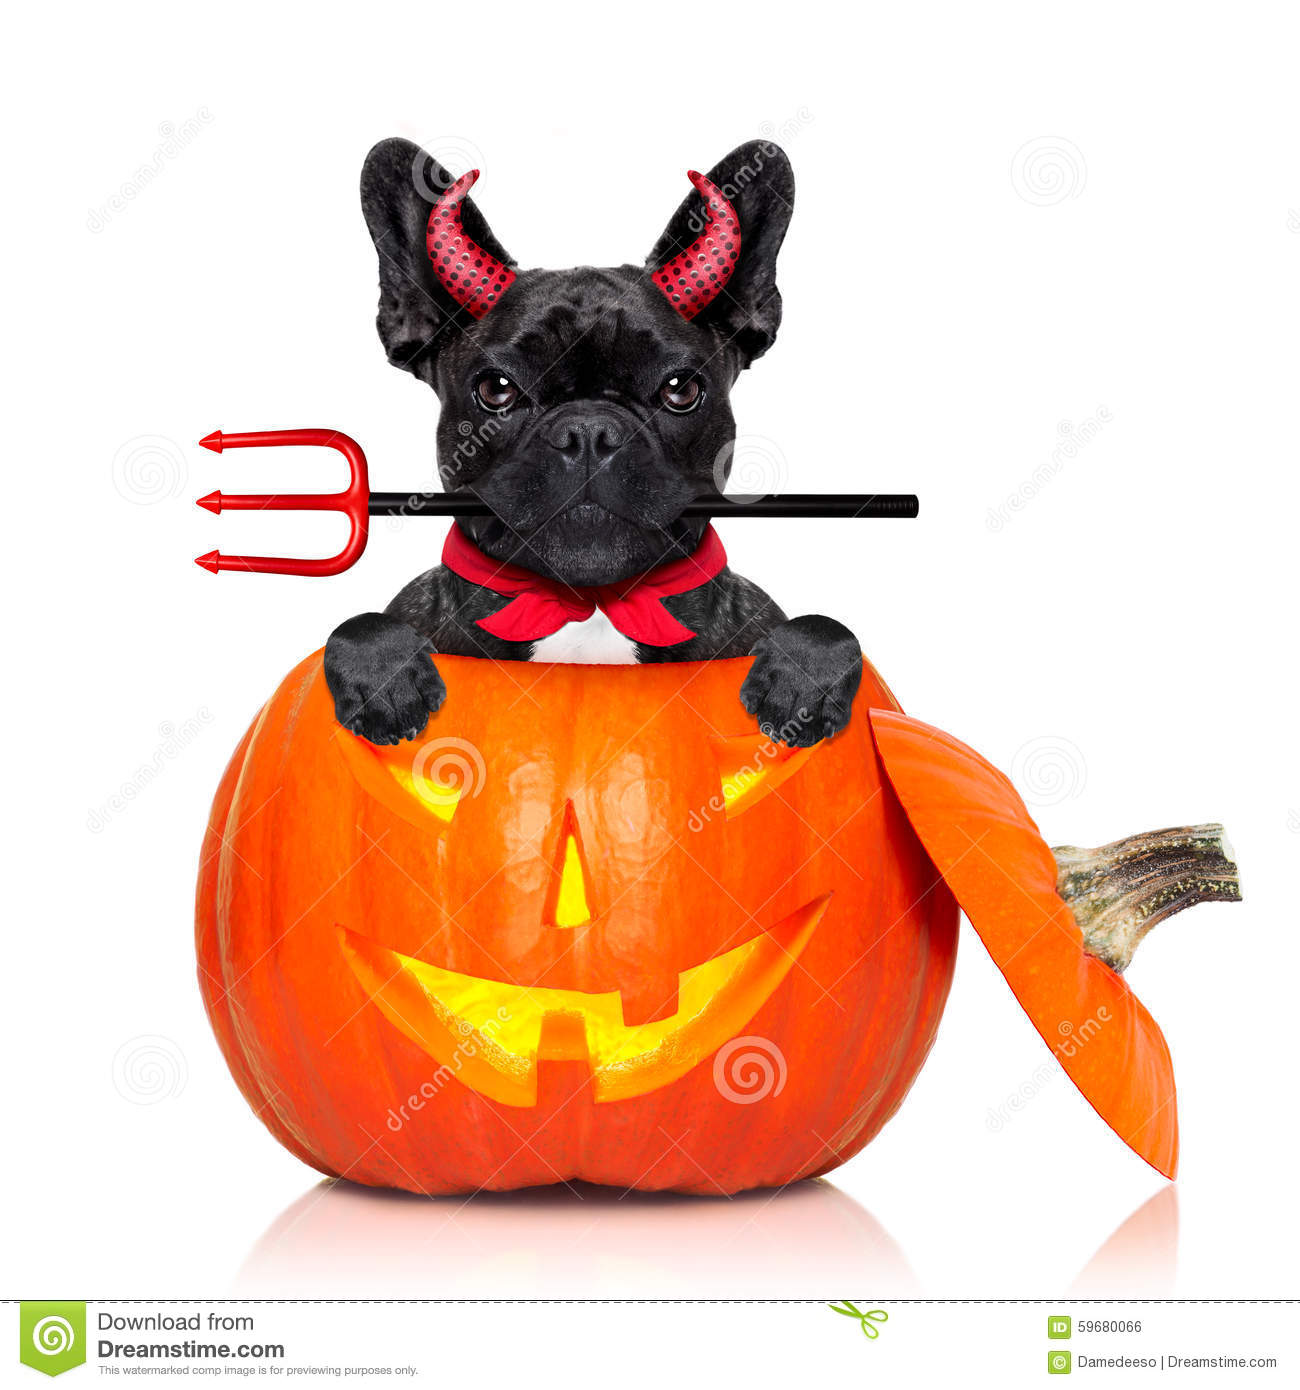 ... dog inside a pumpkin dressed as a bad devil , isolated on white